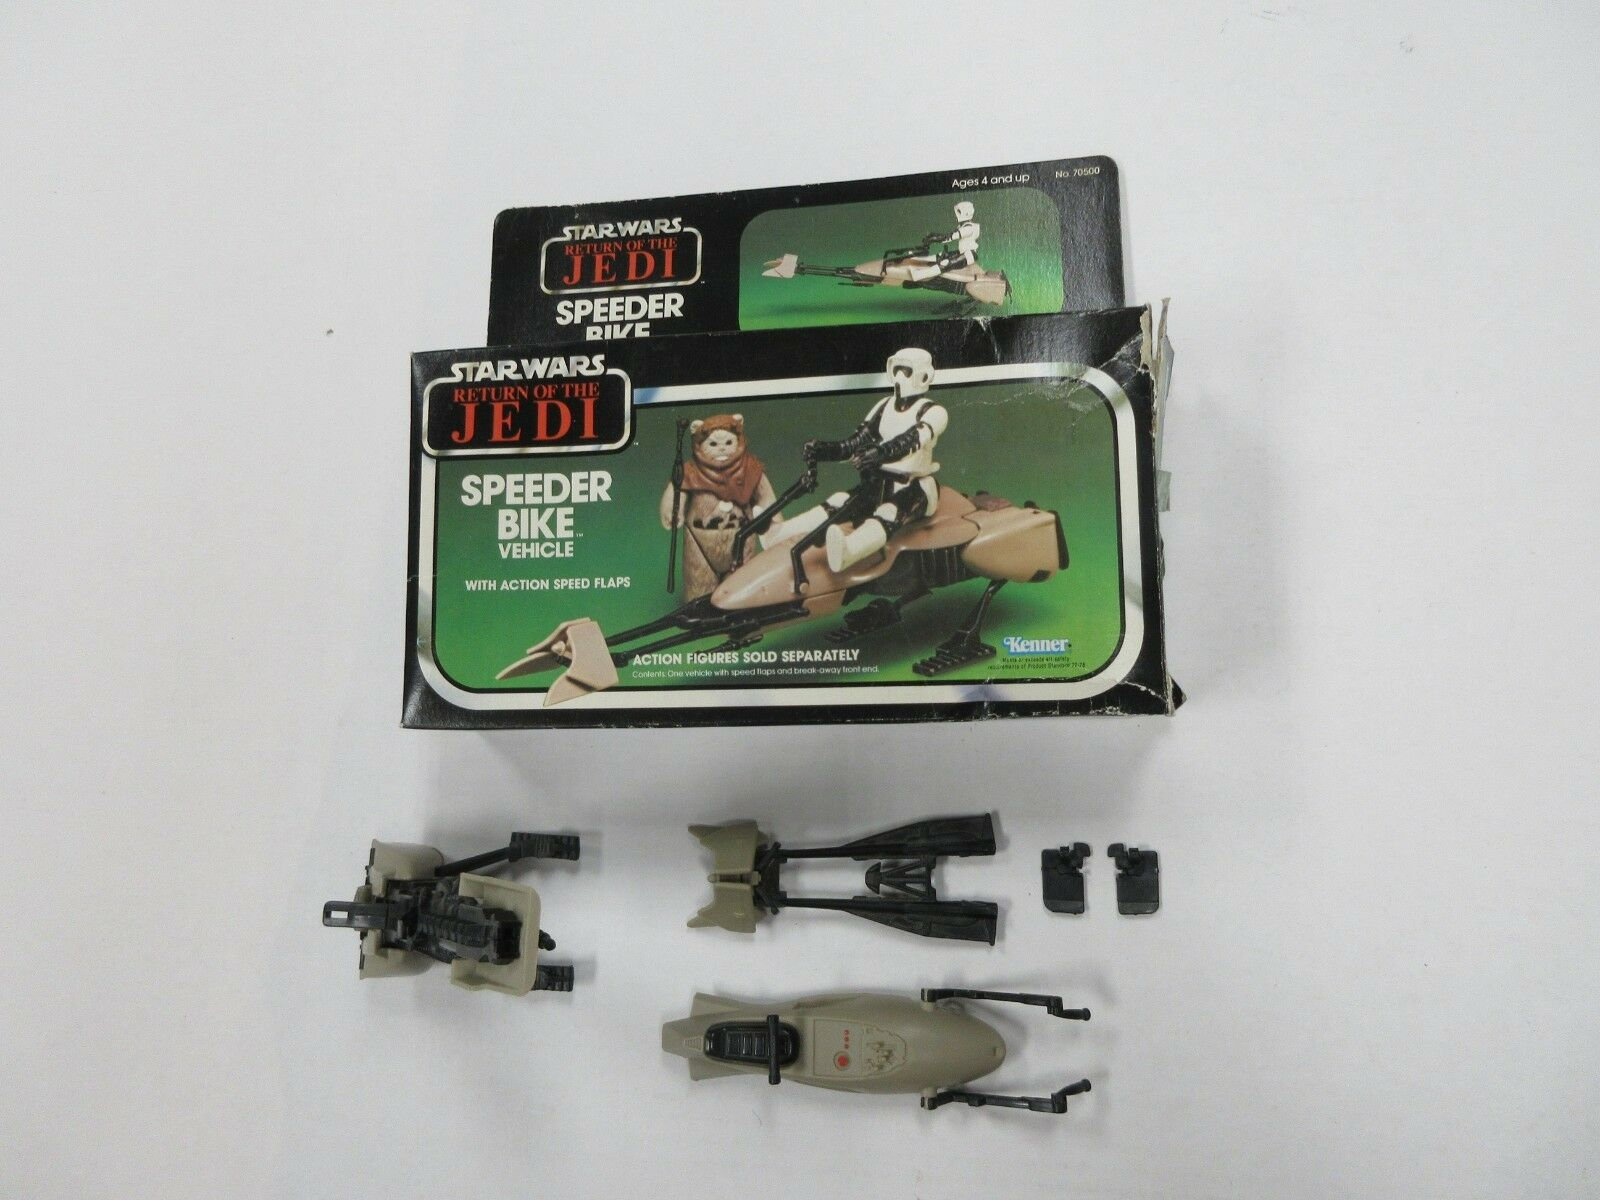 VINTAGE KENNER STAR WARS ROTJ SPEEDER BIKE VEHICLE COMPLETE W/ BOX